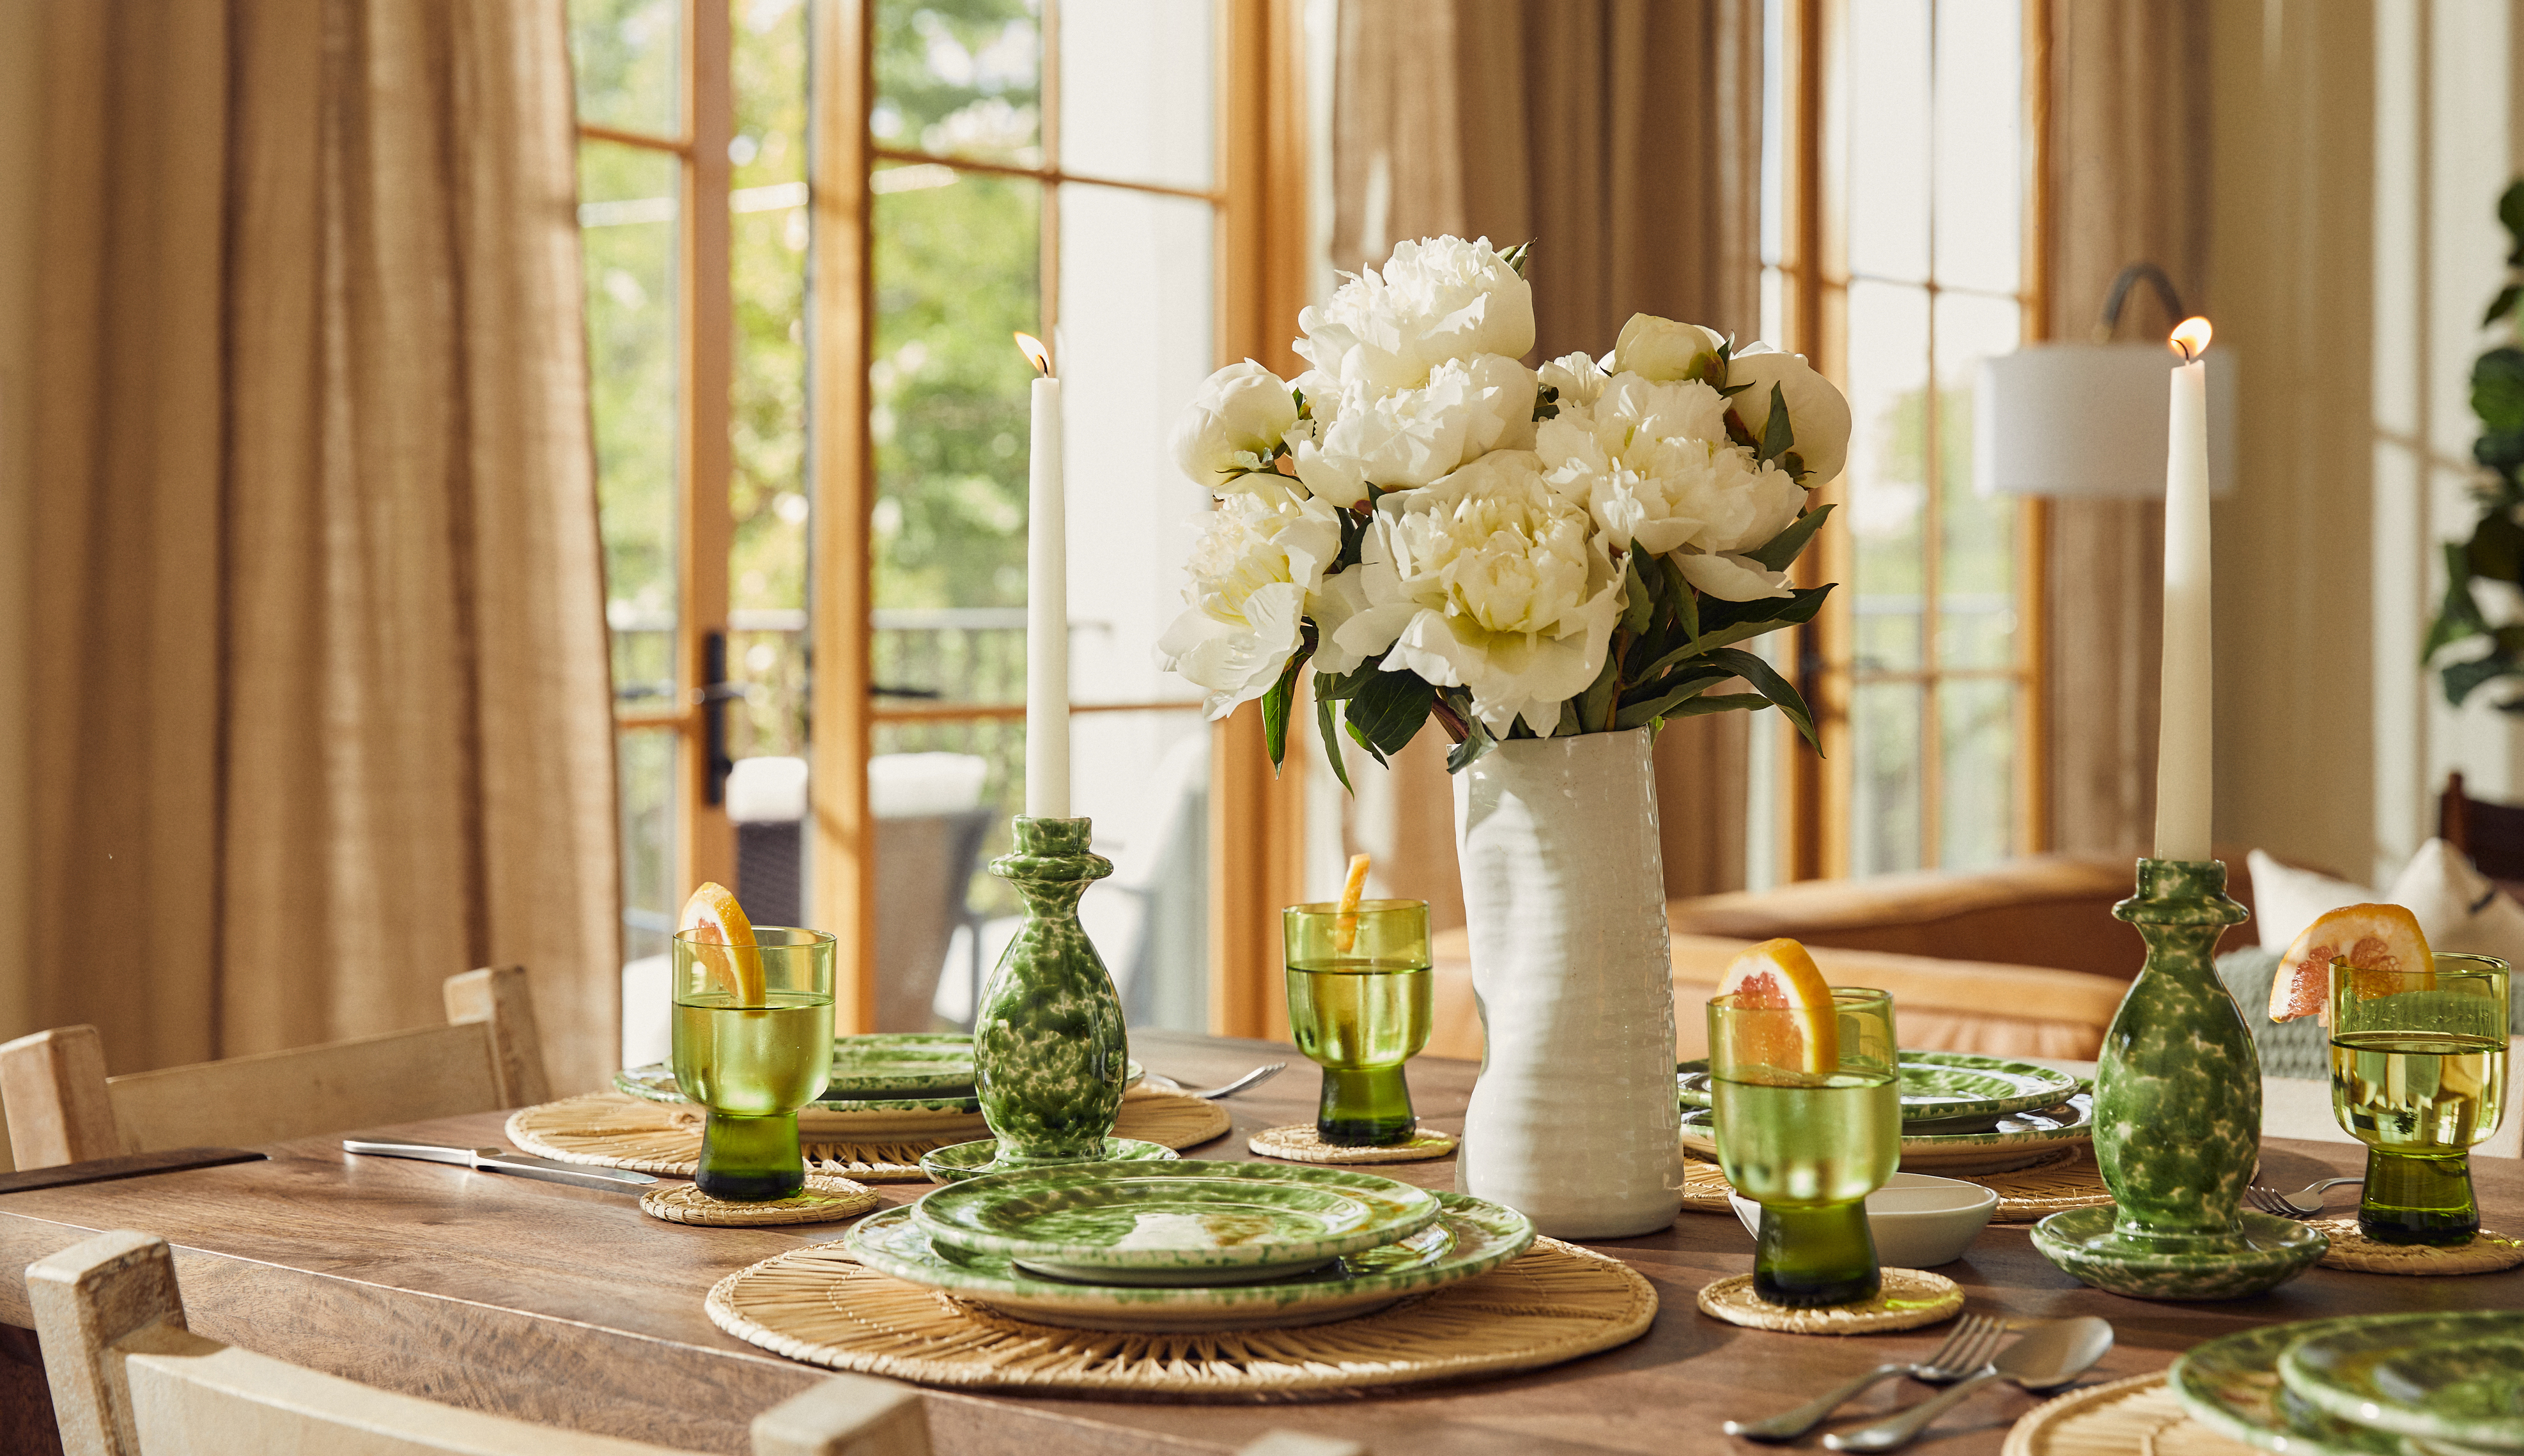 White peony bouquet on set dining table.